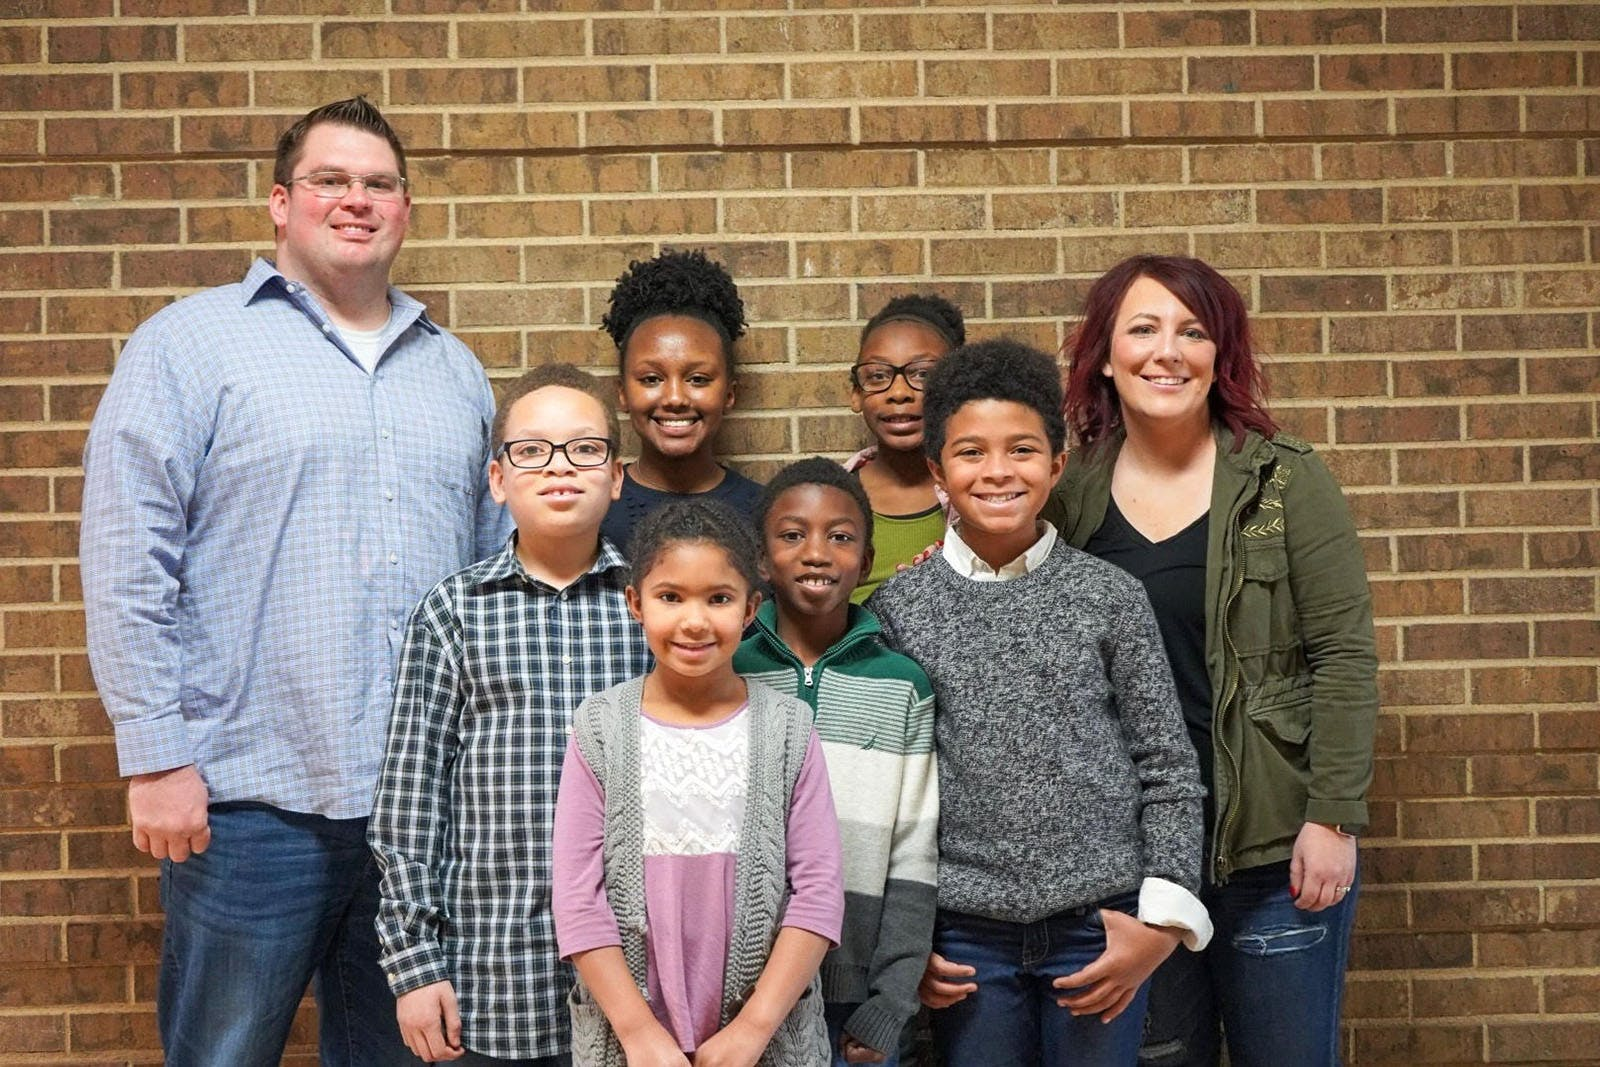 Youth Ministry, Adoption, and Pursuing God's Call